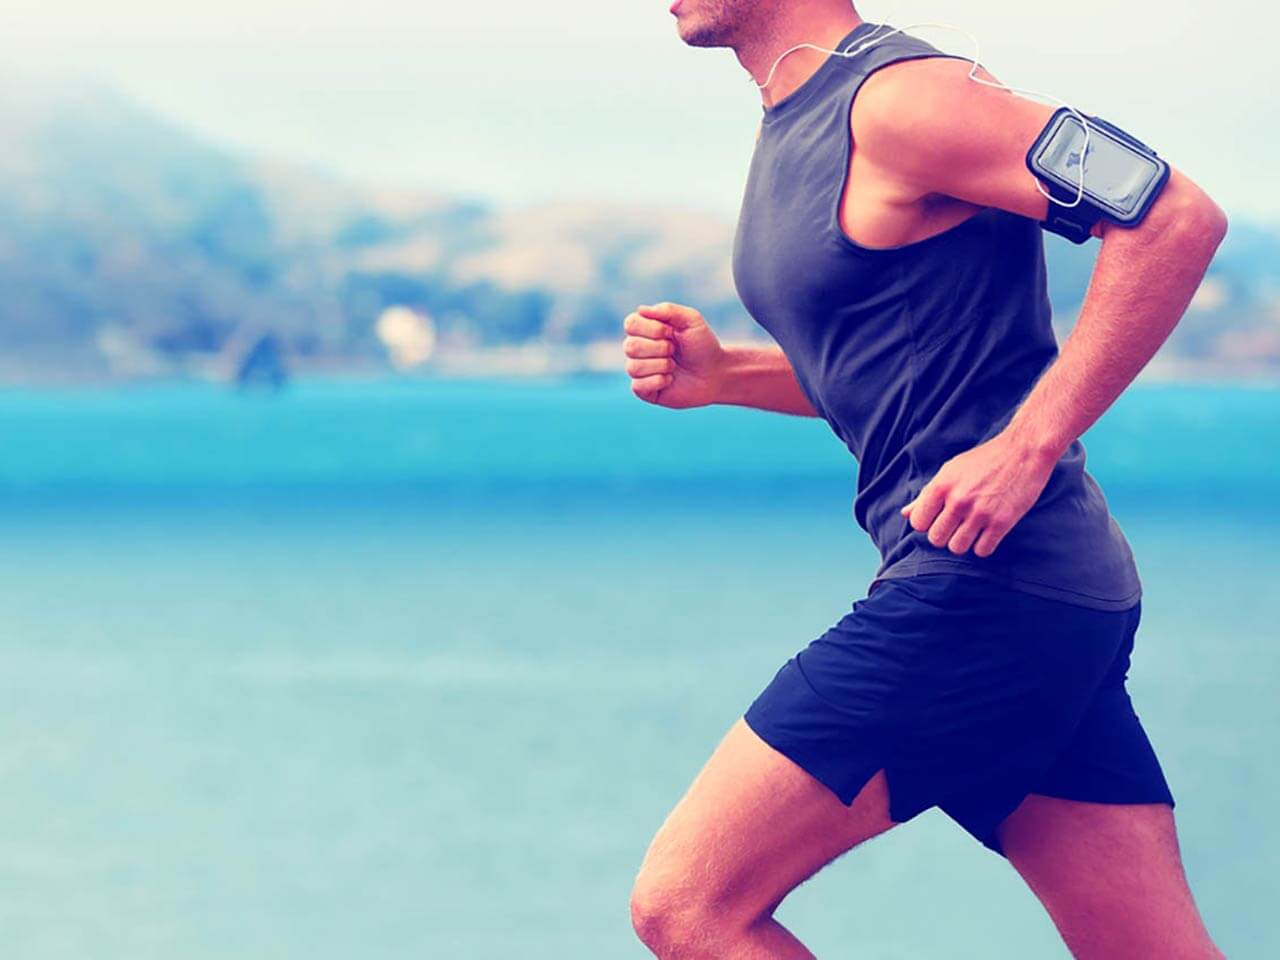 man wearing a tracking device running